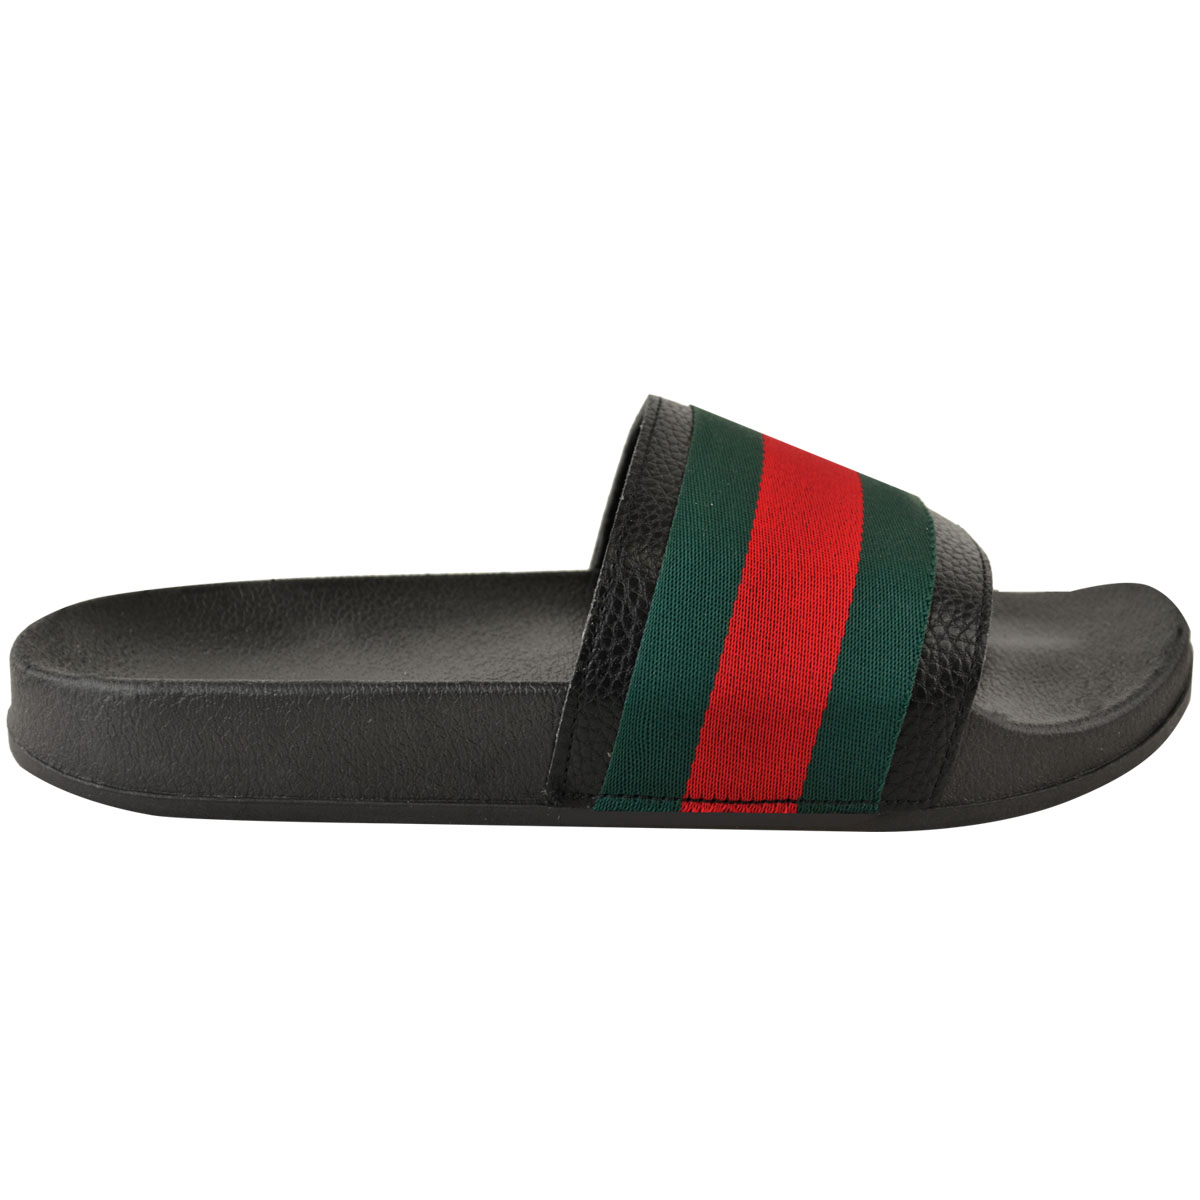 Womens-Ladies-Flat-Striped-Sliders-Summer-Sandals-Slides-Mules-Slippers-Size thumbnail 4